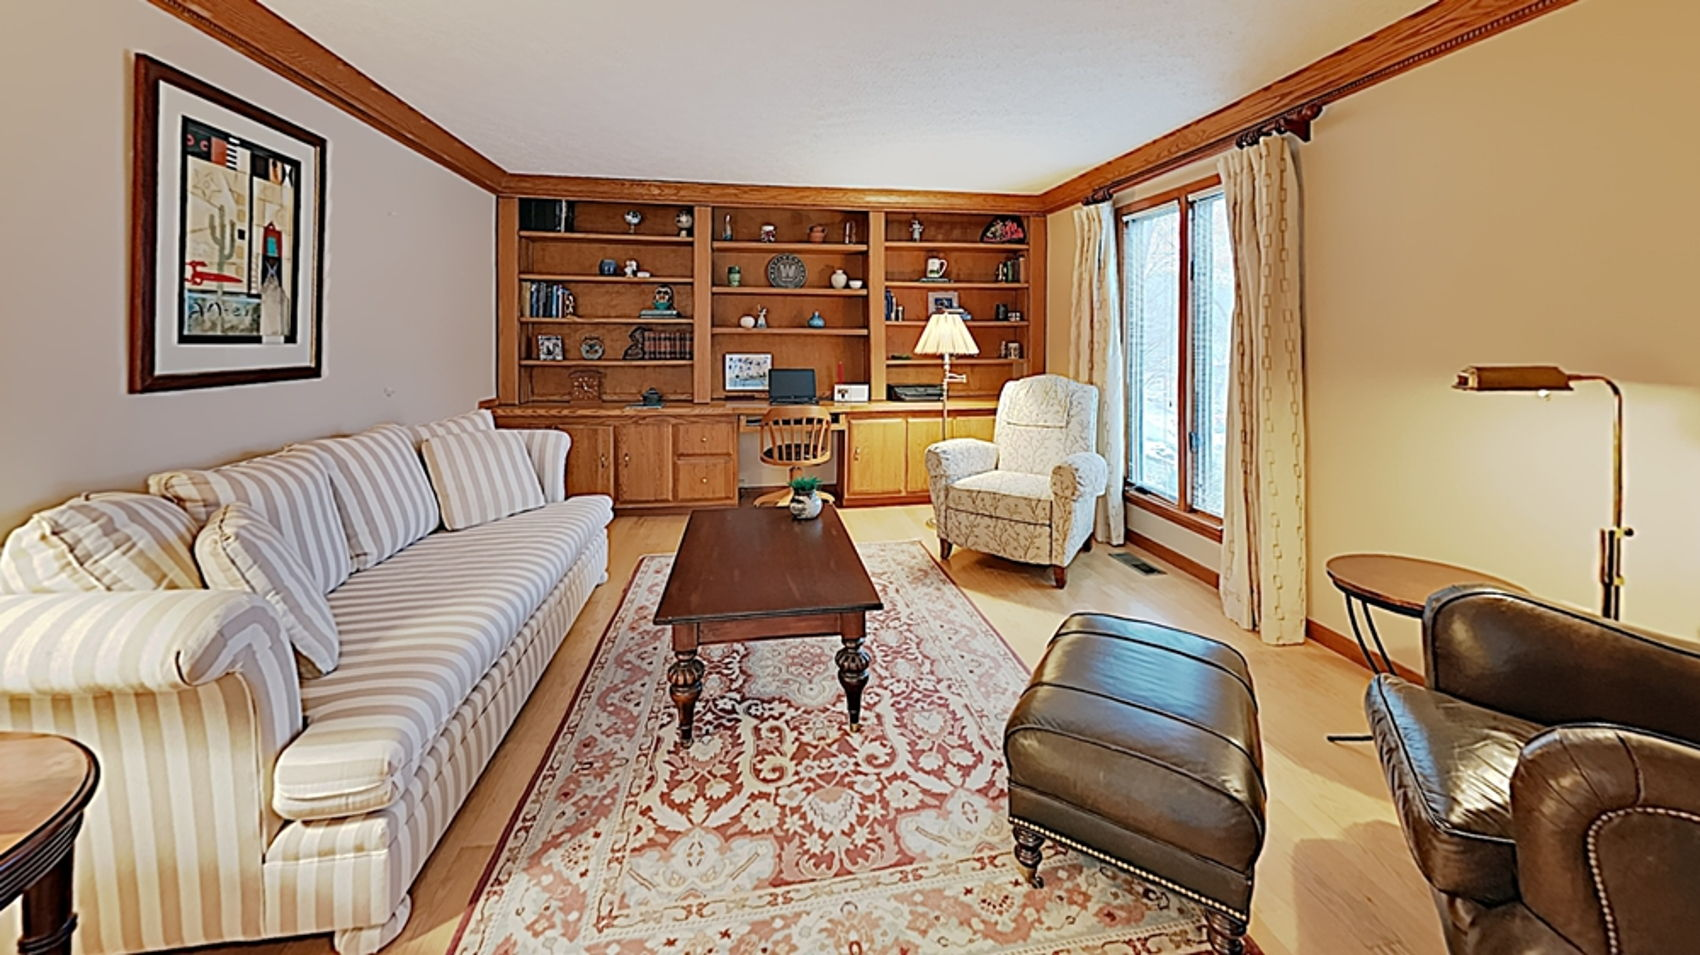 Living room with built-ins